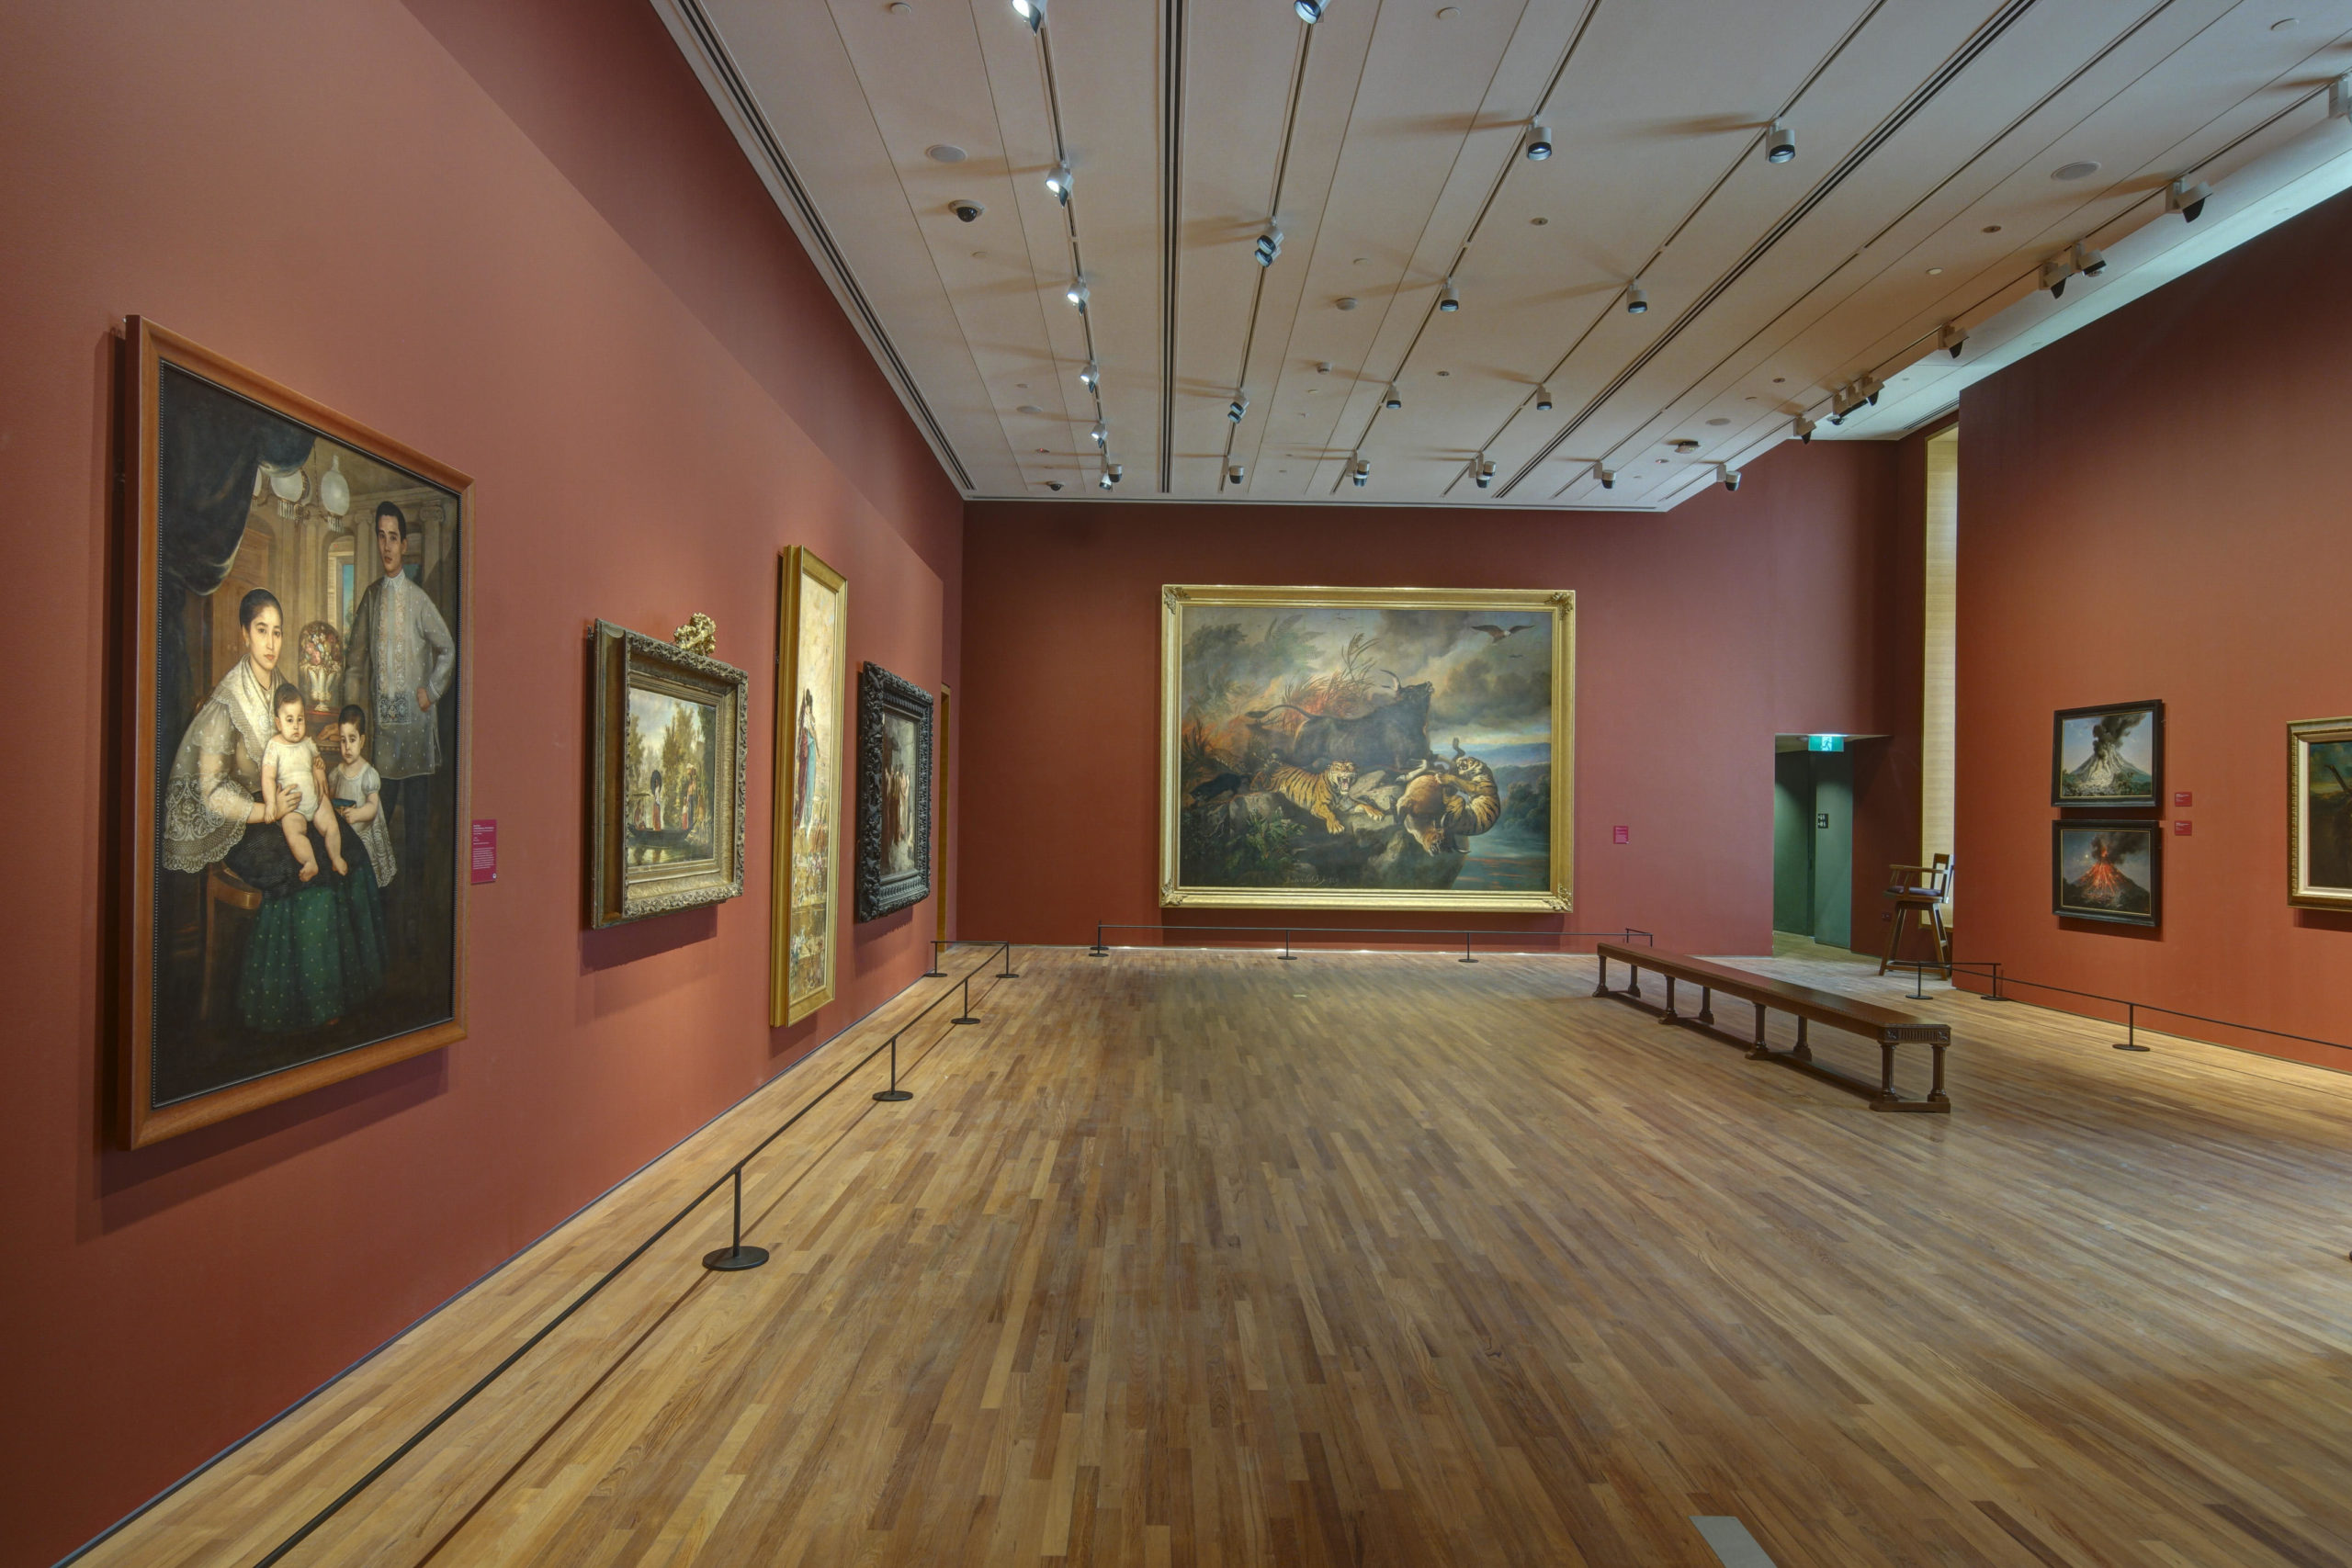 Free online events October 2020 - National Gallery Singapore Highlights of the Gallery